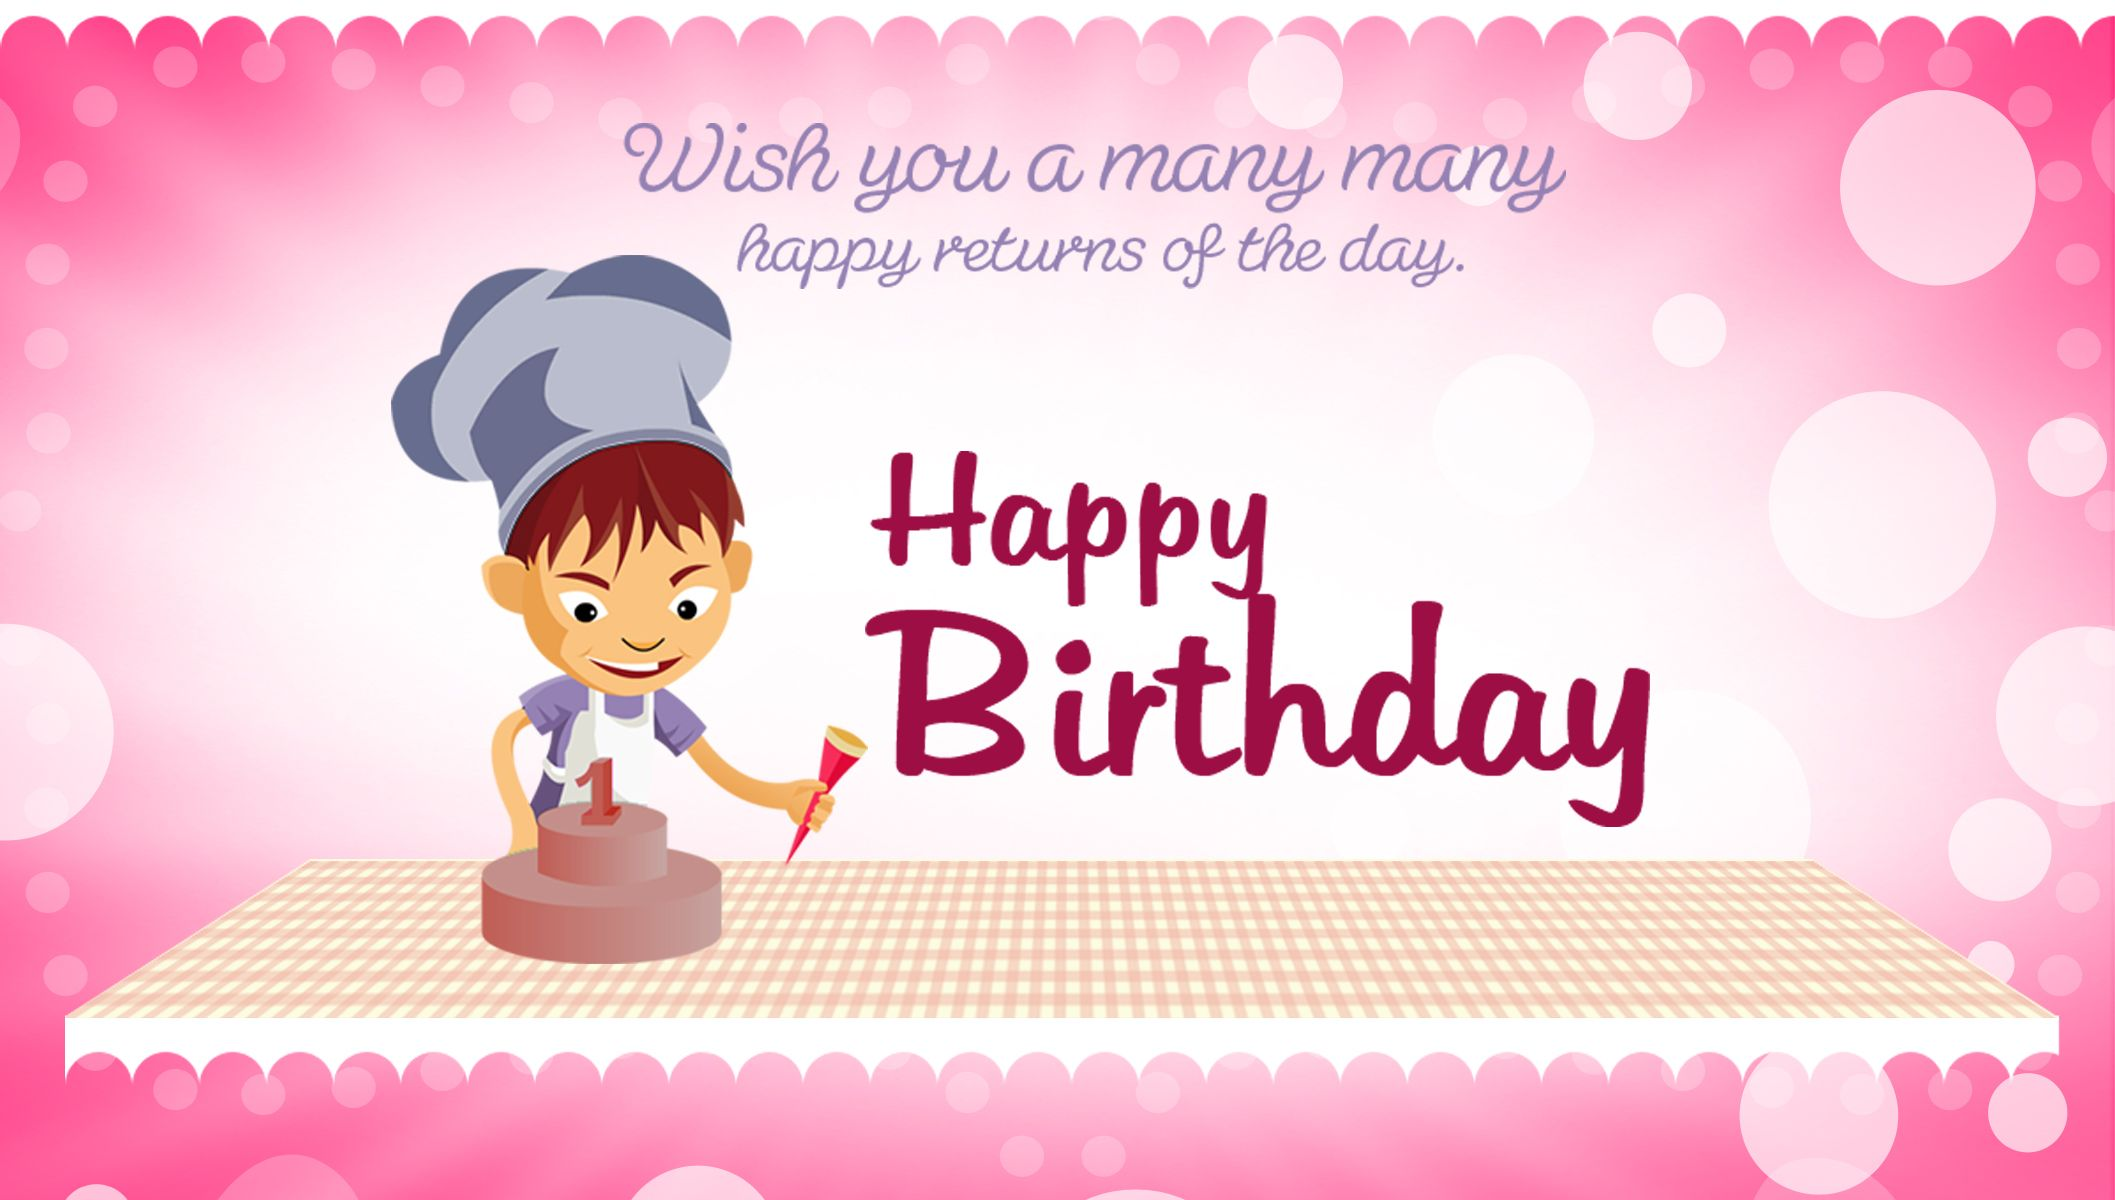 Wish You Very Happy Birthday Wishes Greeting Card Download – Free Birthday Card Download